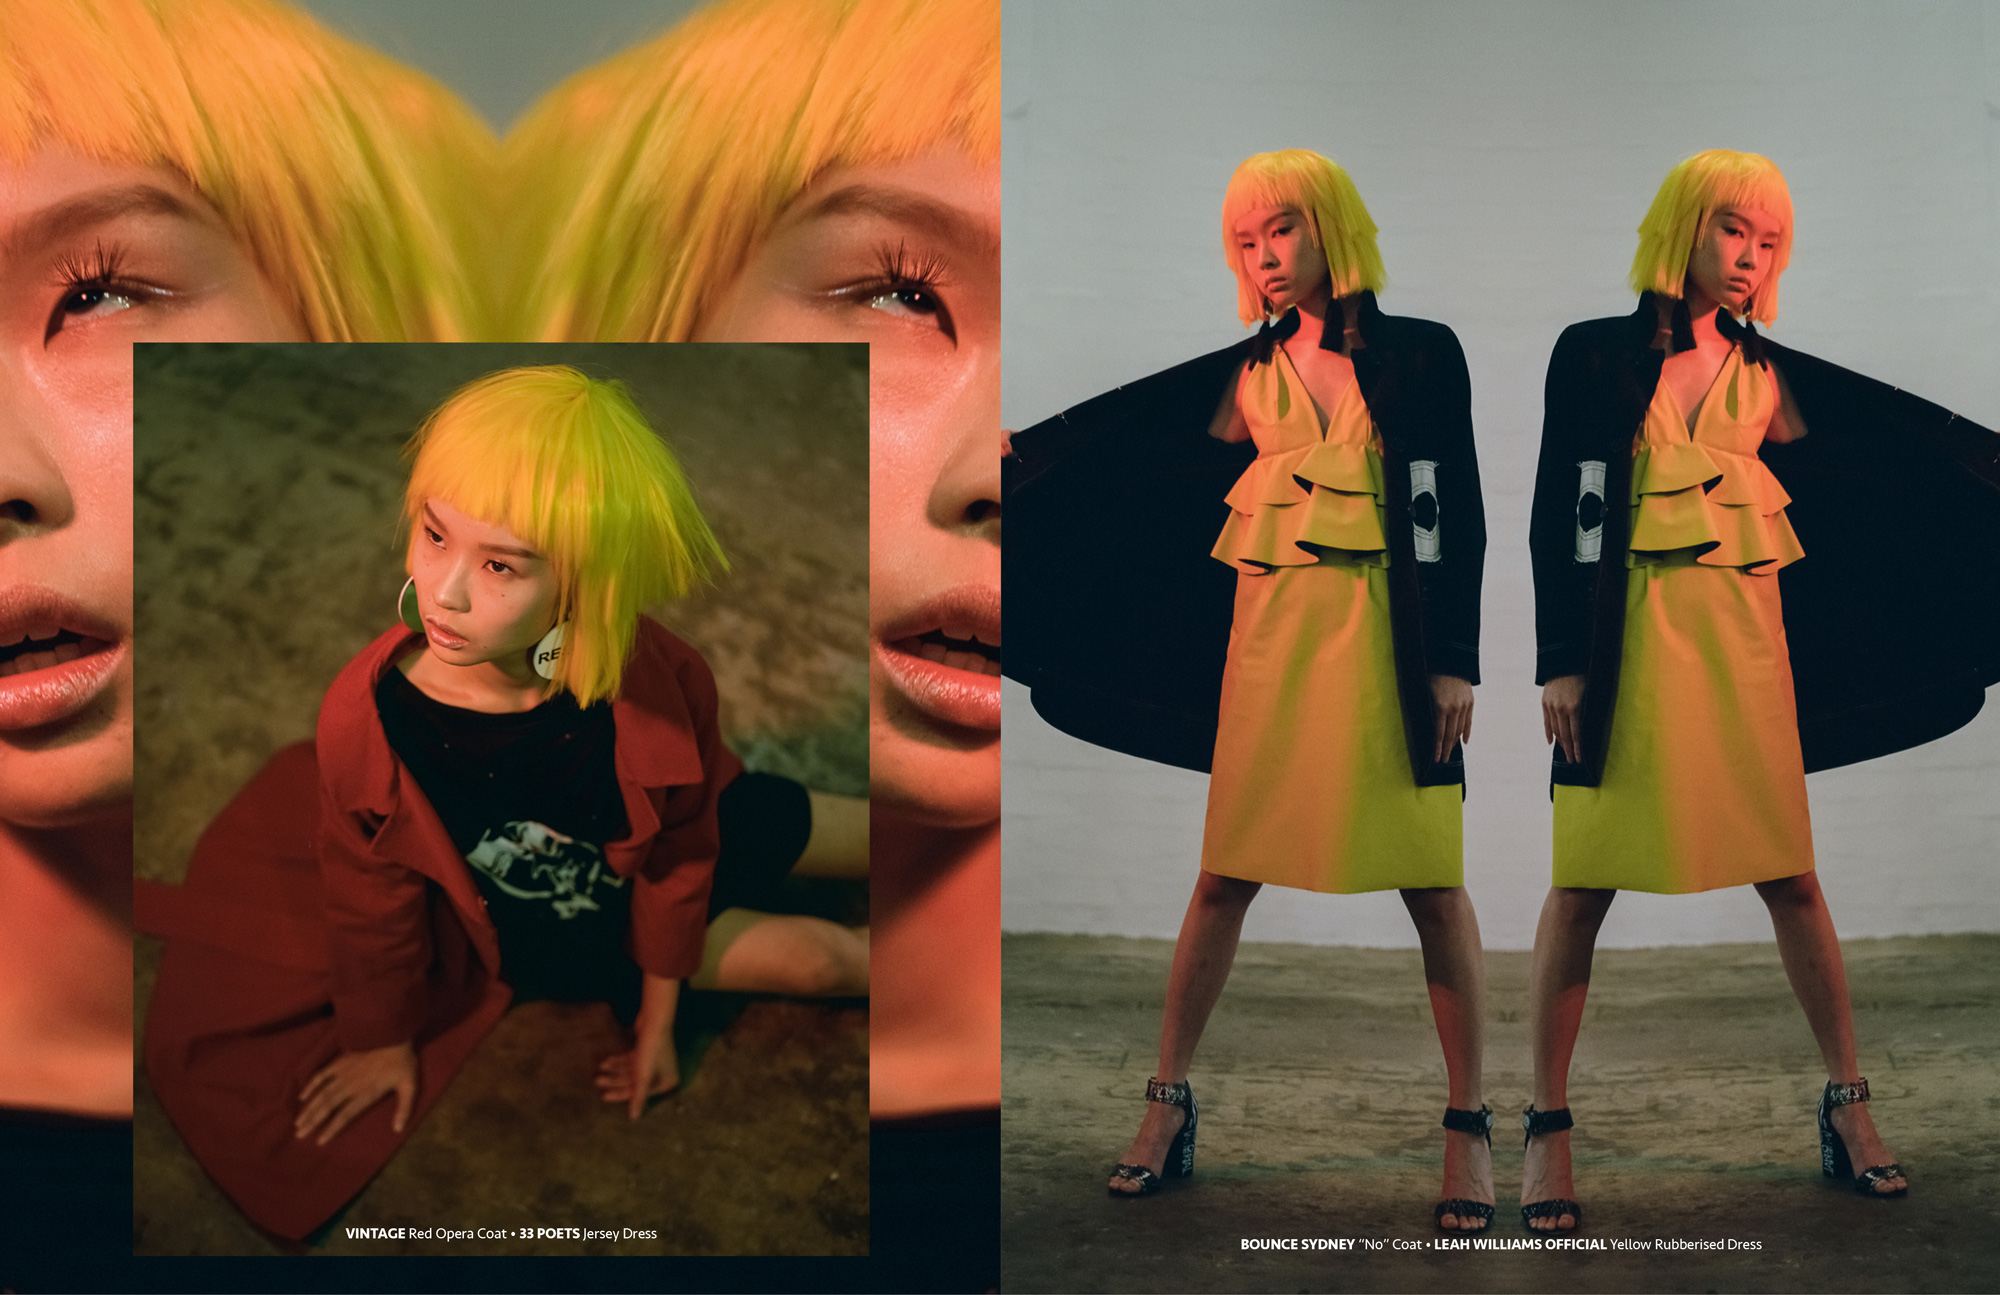 Cindy Wang in GRAPHIC CONTENT Asian grunge aesthetic fashion editorial